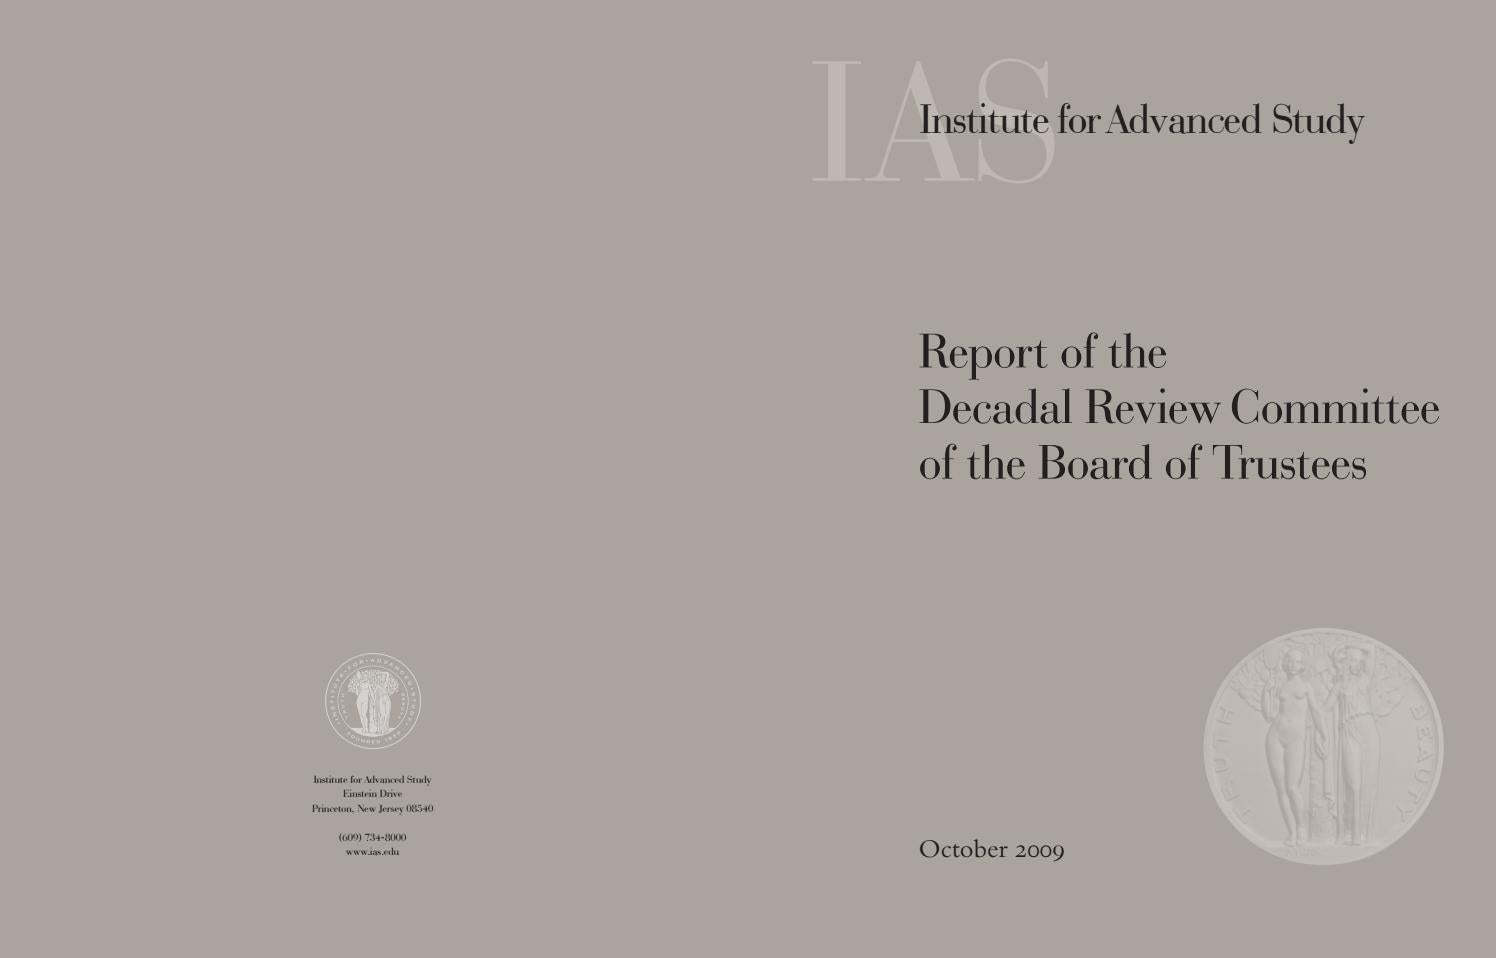 Report of the Decadal Review Committee of the Board of Trustees